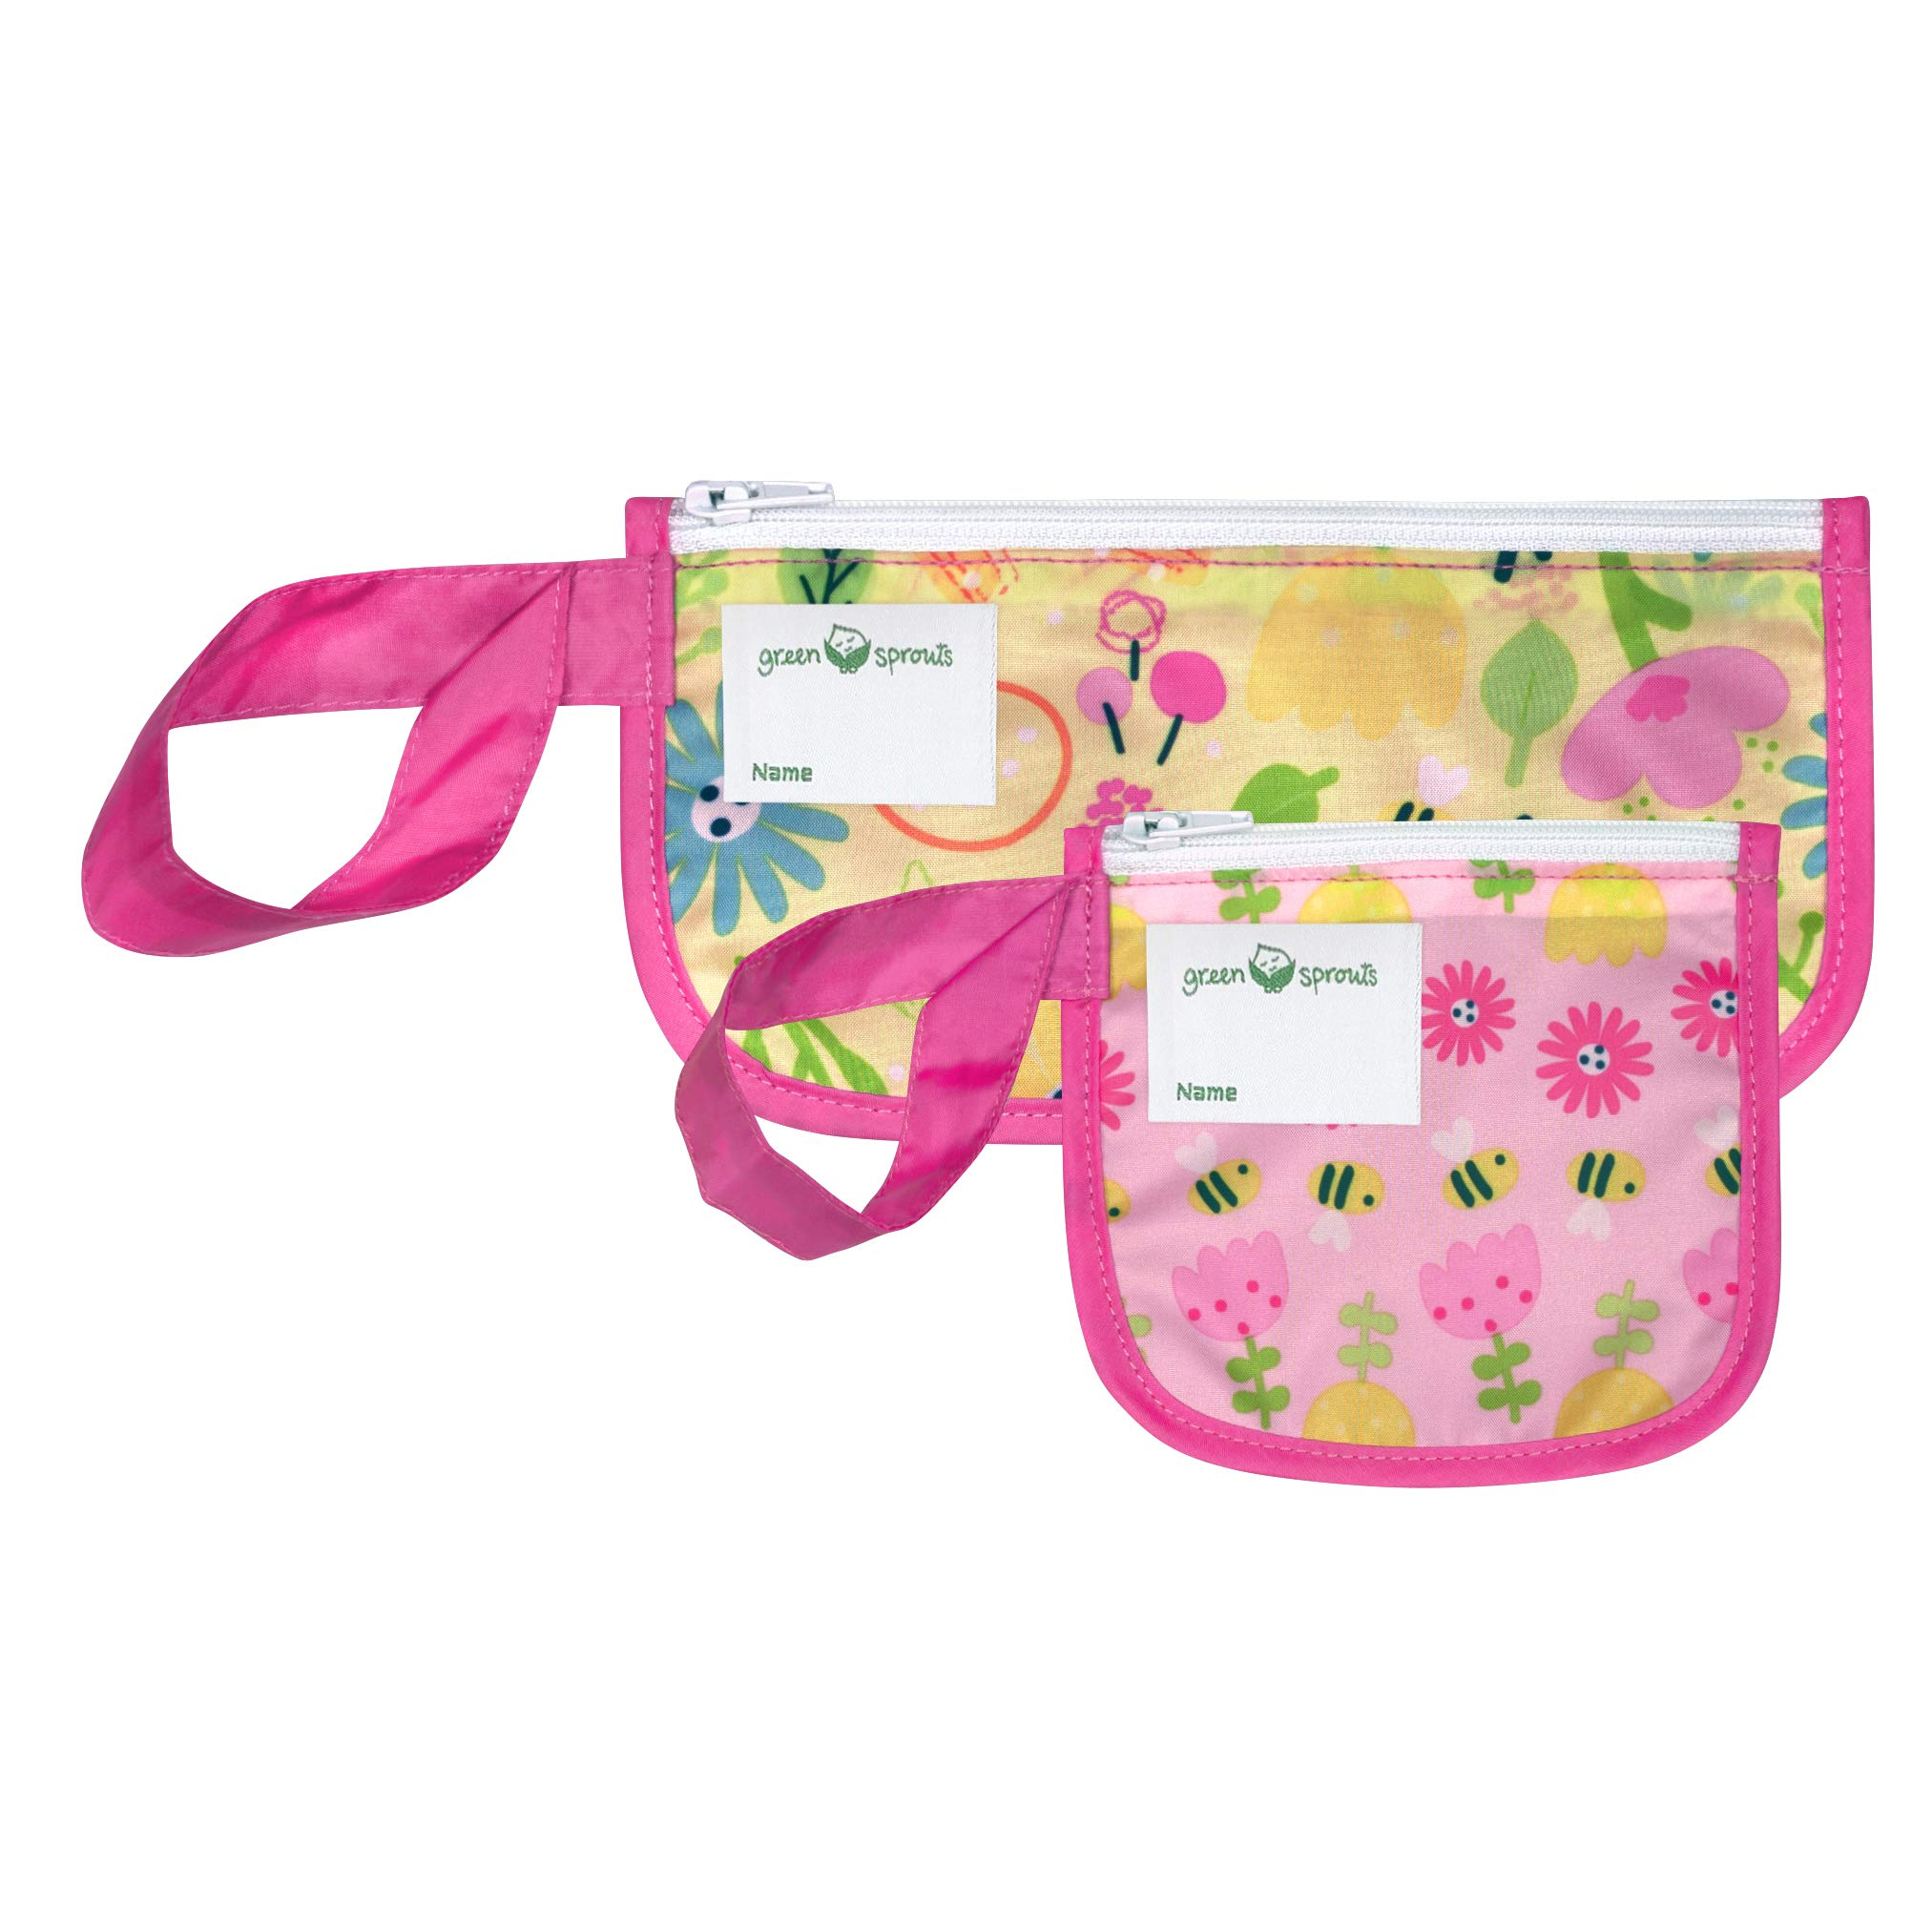 green sprouts Reusable Snack Bags (2 Pack)   Holds Food, Utensils, Wipes, More   Food-Safe, Waterproof, Easy-Clean Material, Pink Bee Floral